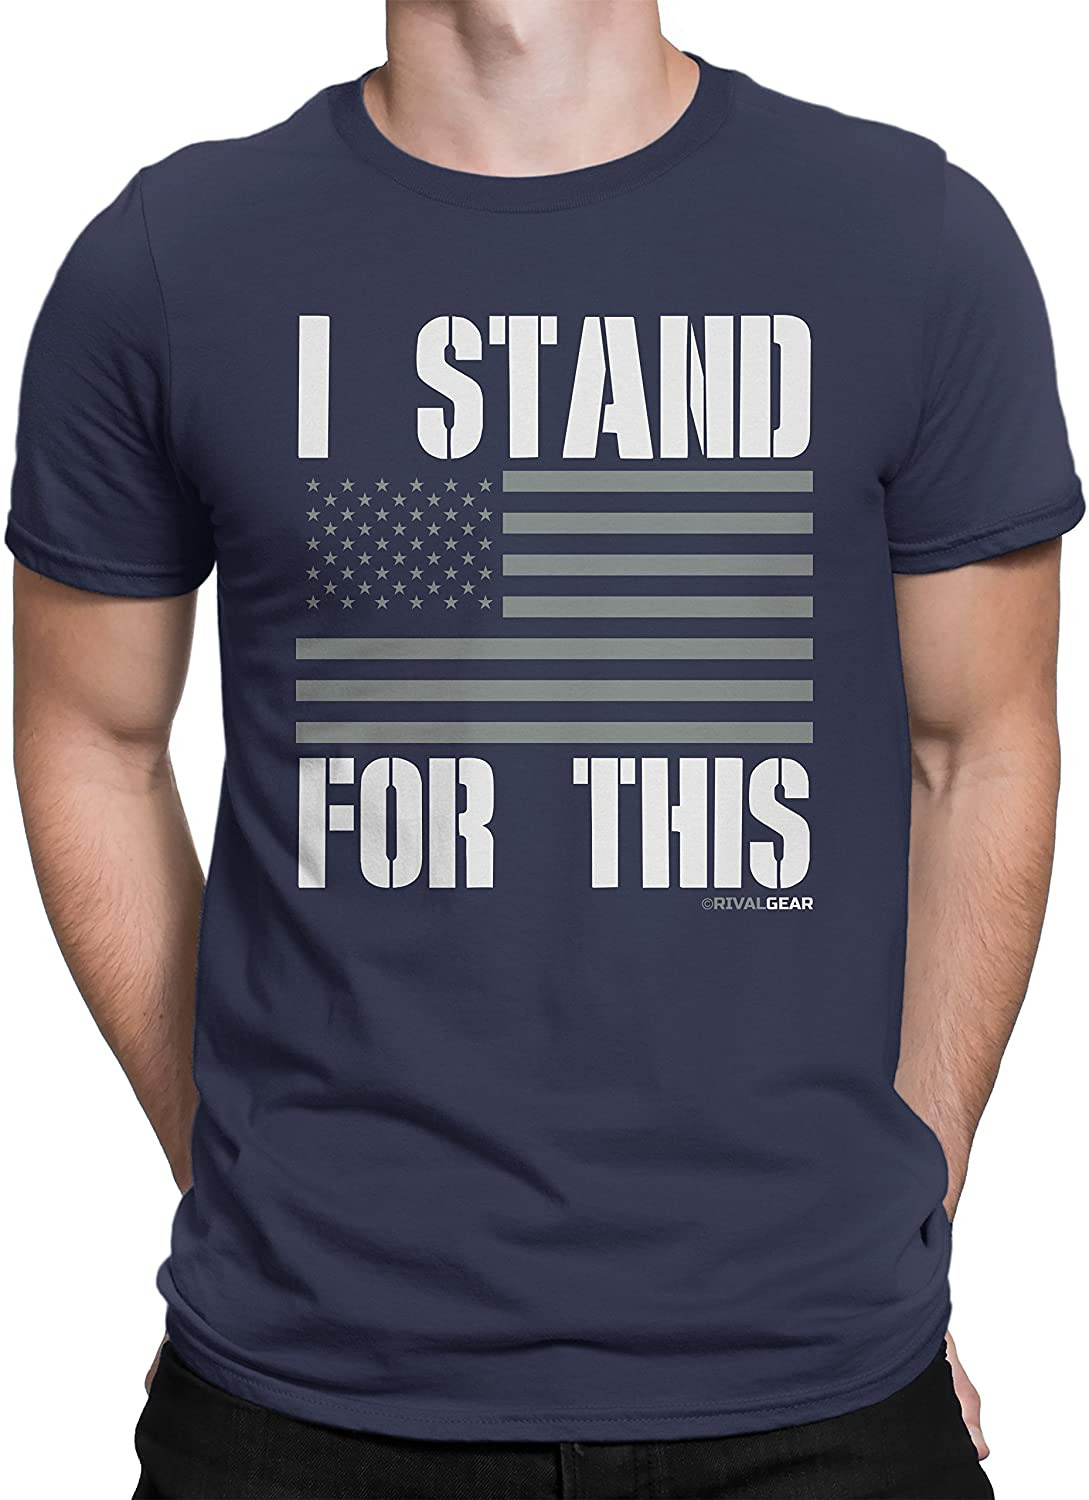 Rival Gear Dallas Football Fan T-Shirt, I Stand for This